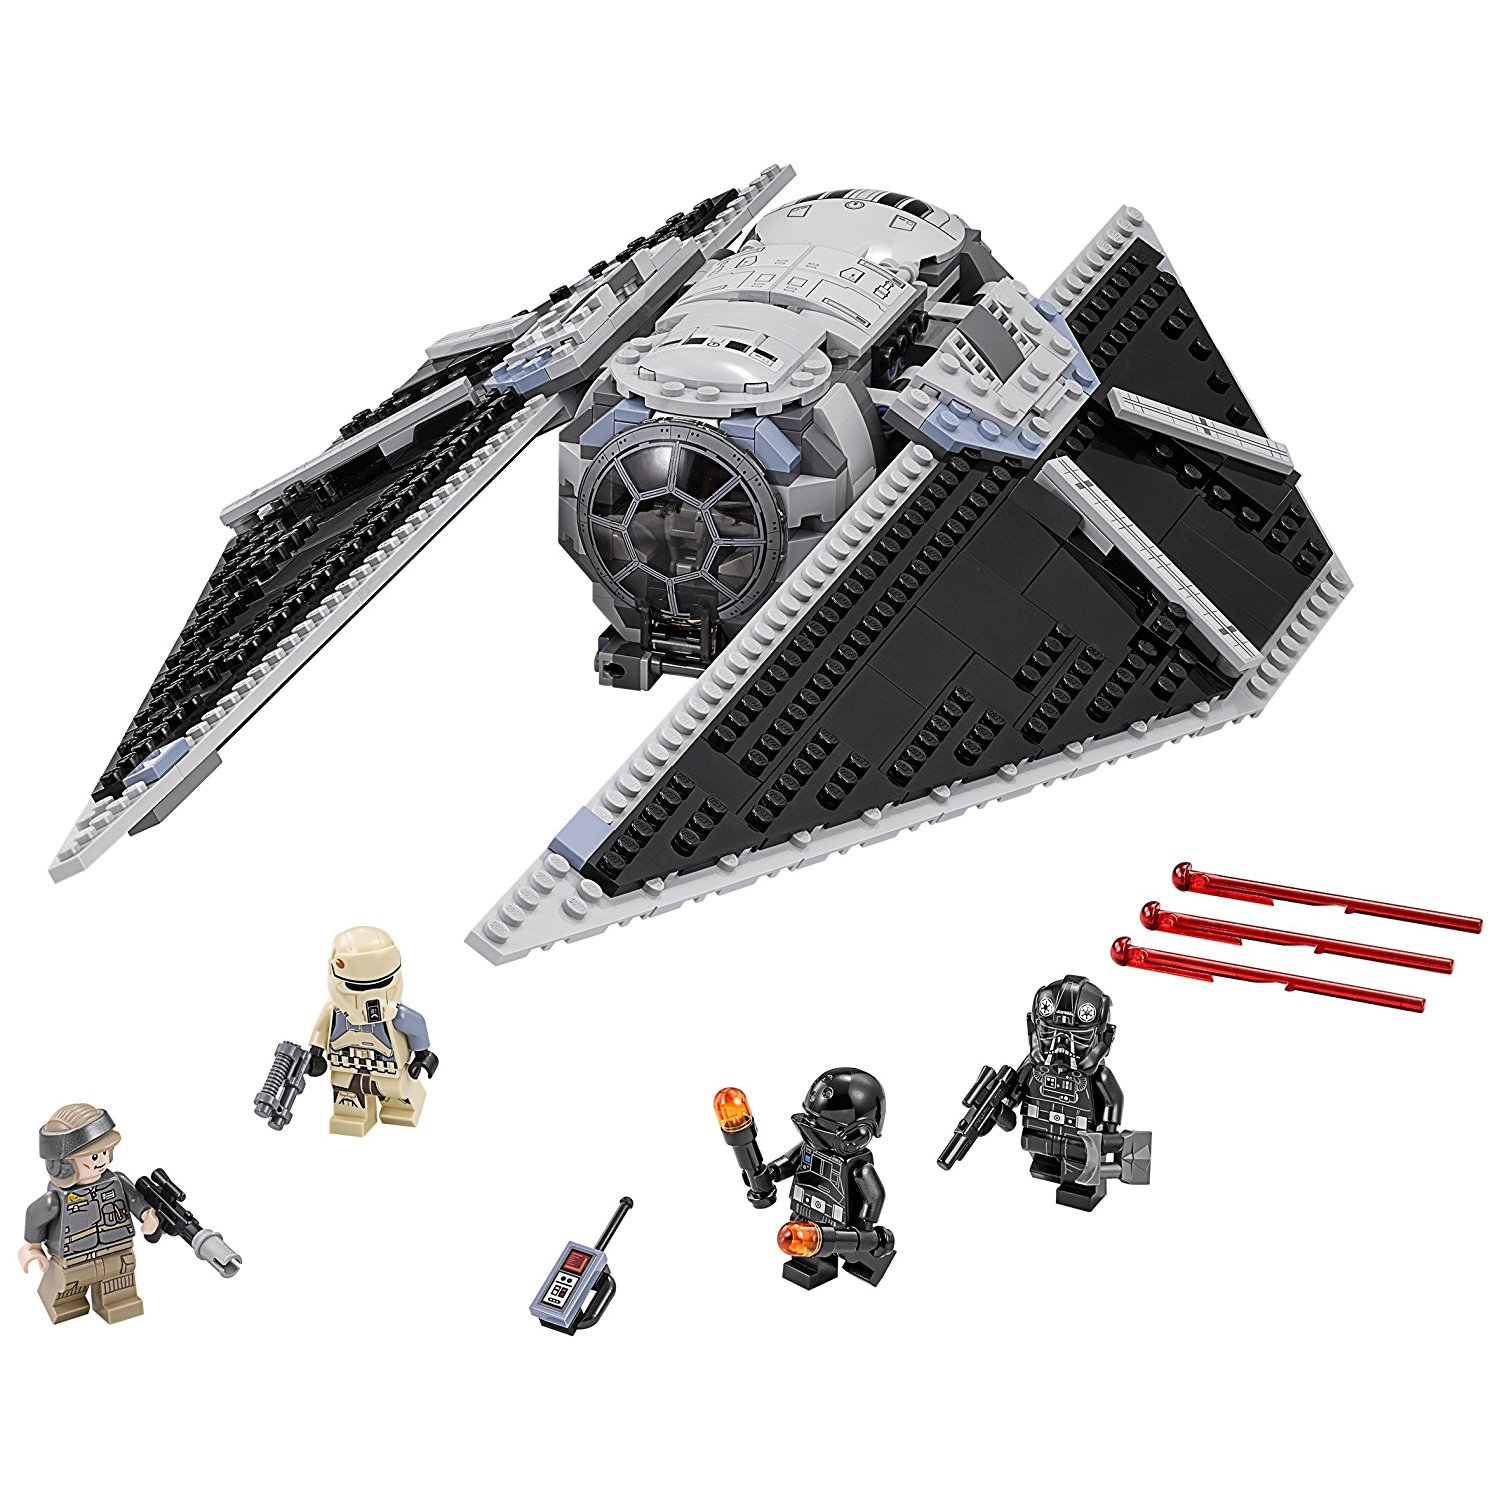 LEGO Star Wars 75154 TIE Striker Building Set